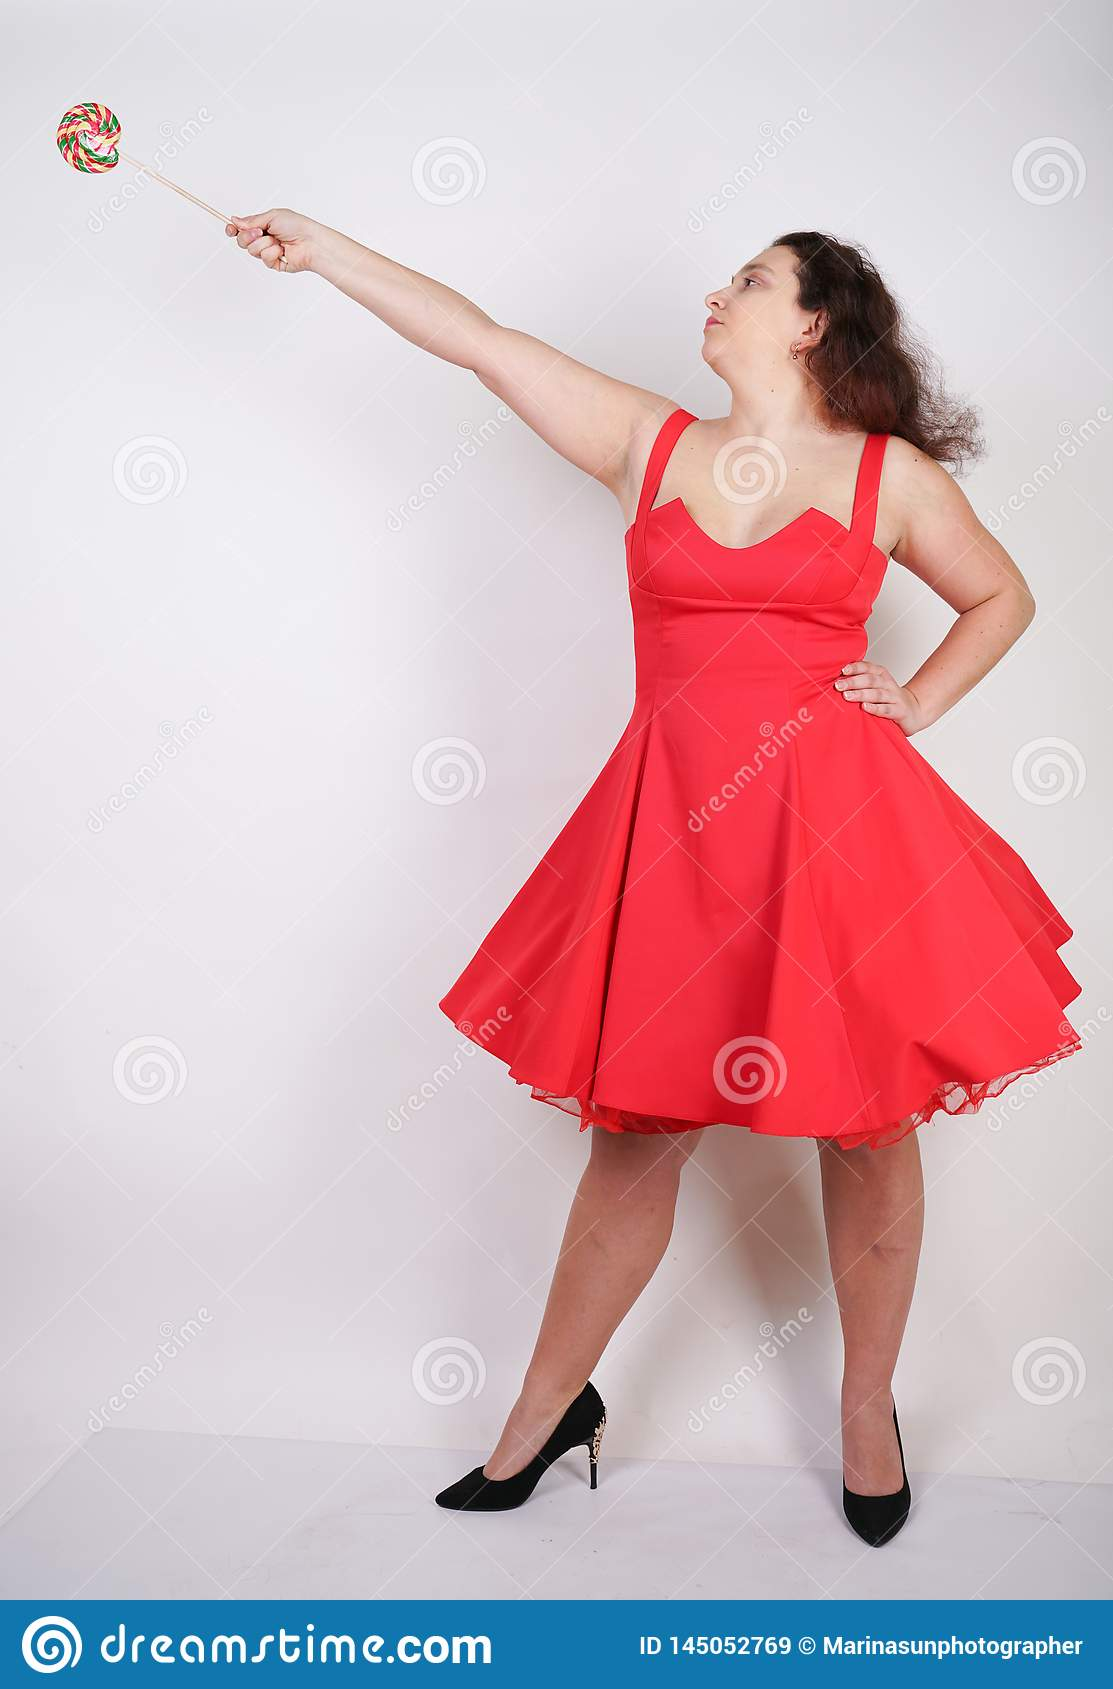 Plump woman in a red pinup dress. chubby fashionable girl standing on white background in Studio